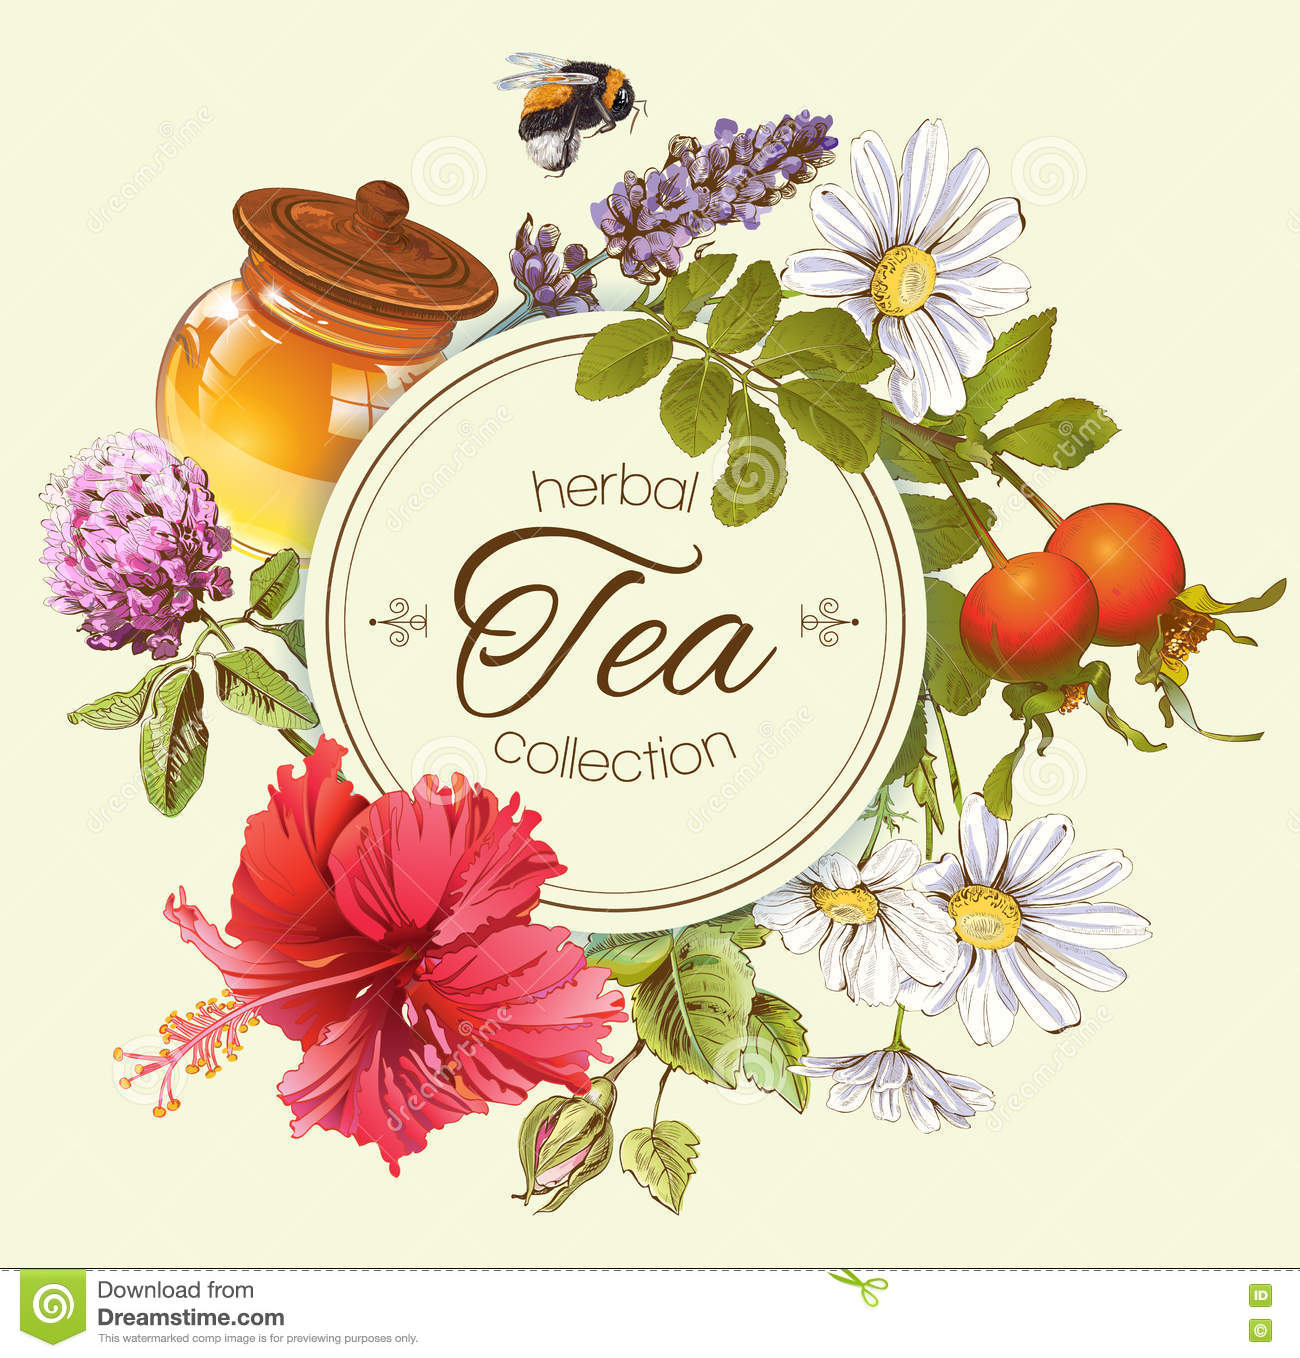 Herbal Tea Banner Stock Vector Illustration Of Hibiscus 72750739